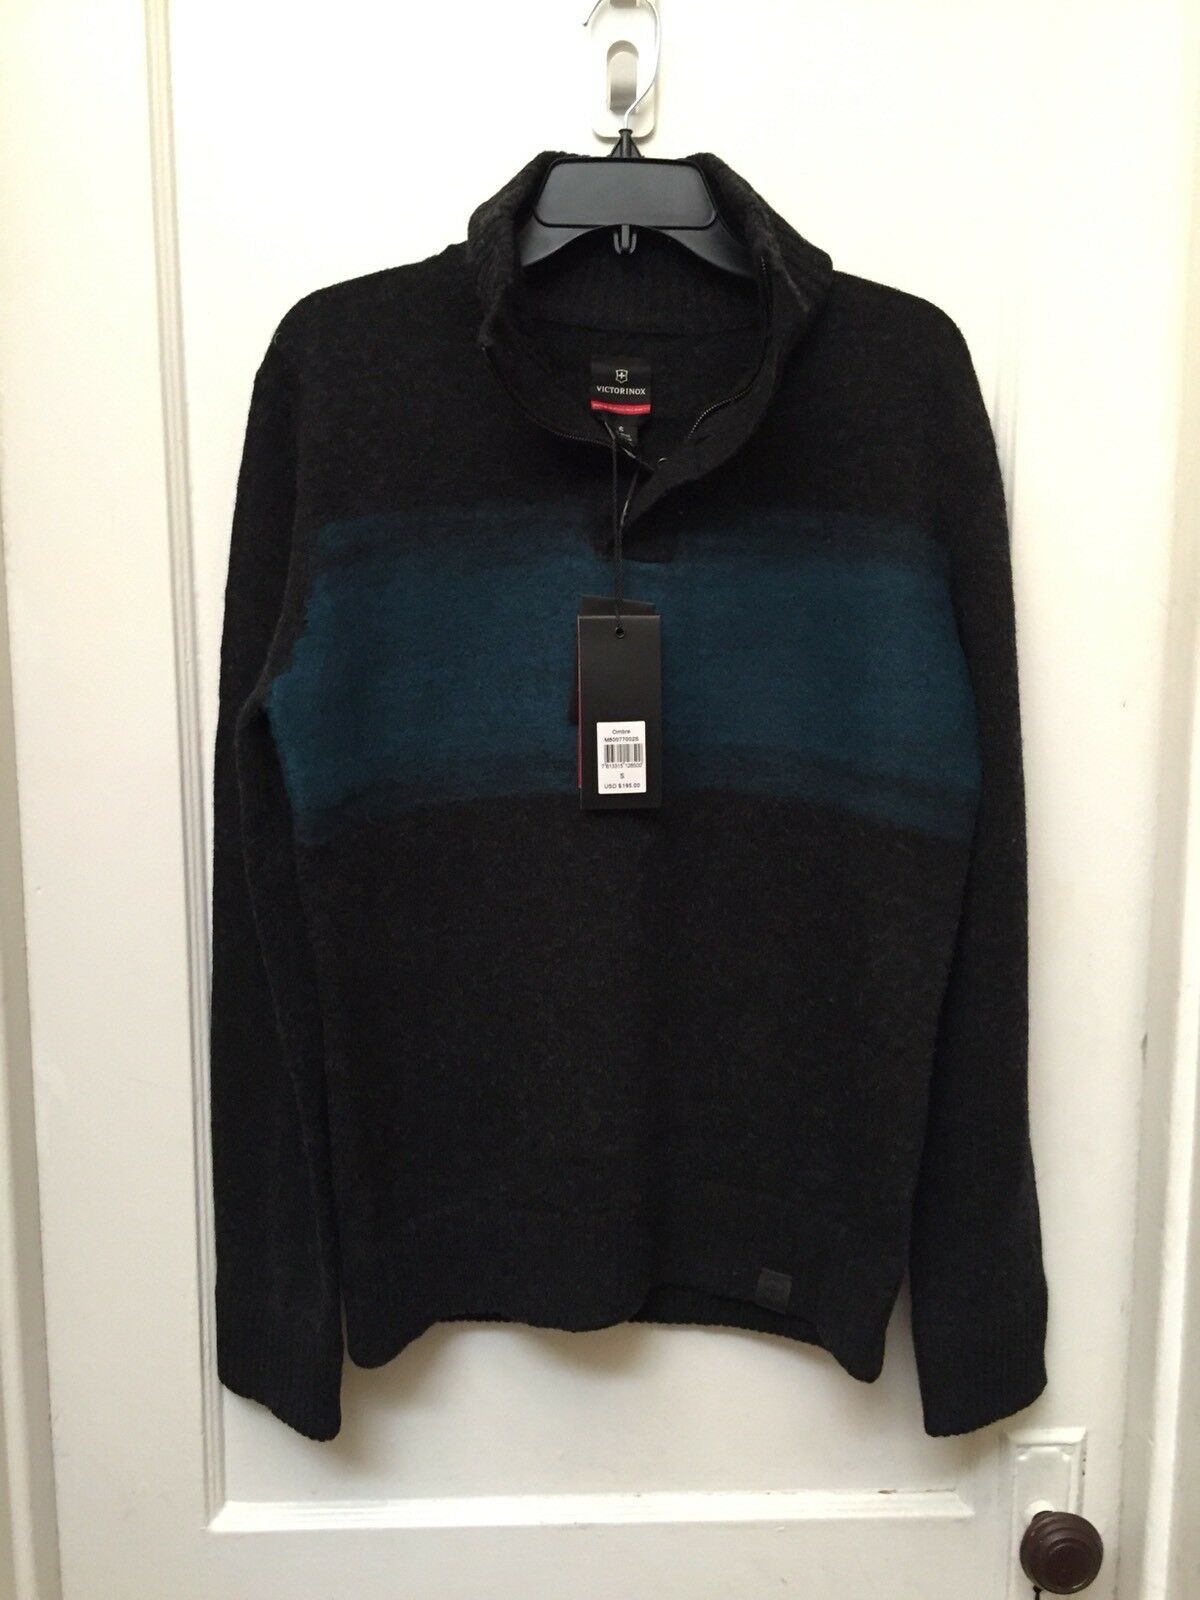 486bd45bf8a VICTORINOX SWISS ARMY OMBRE WOOL BLEND SWEATER S NEW SIZE ...